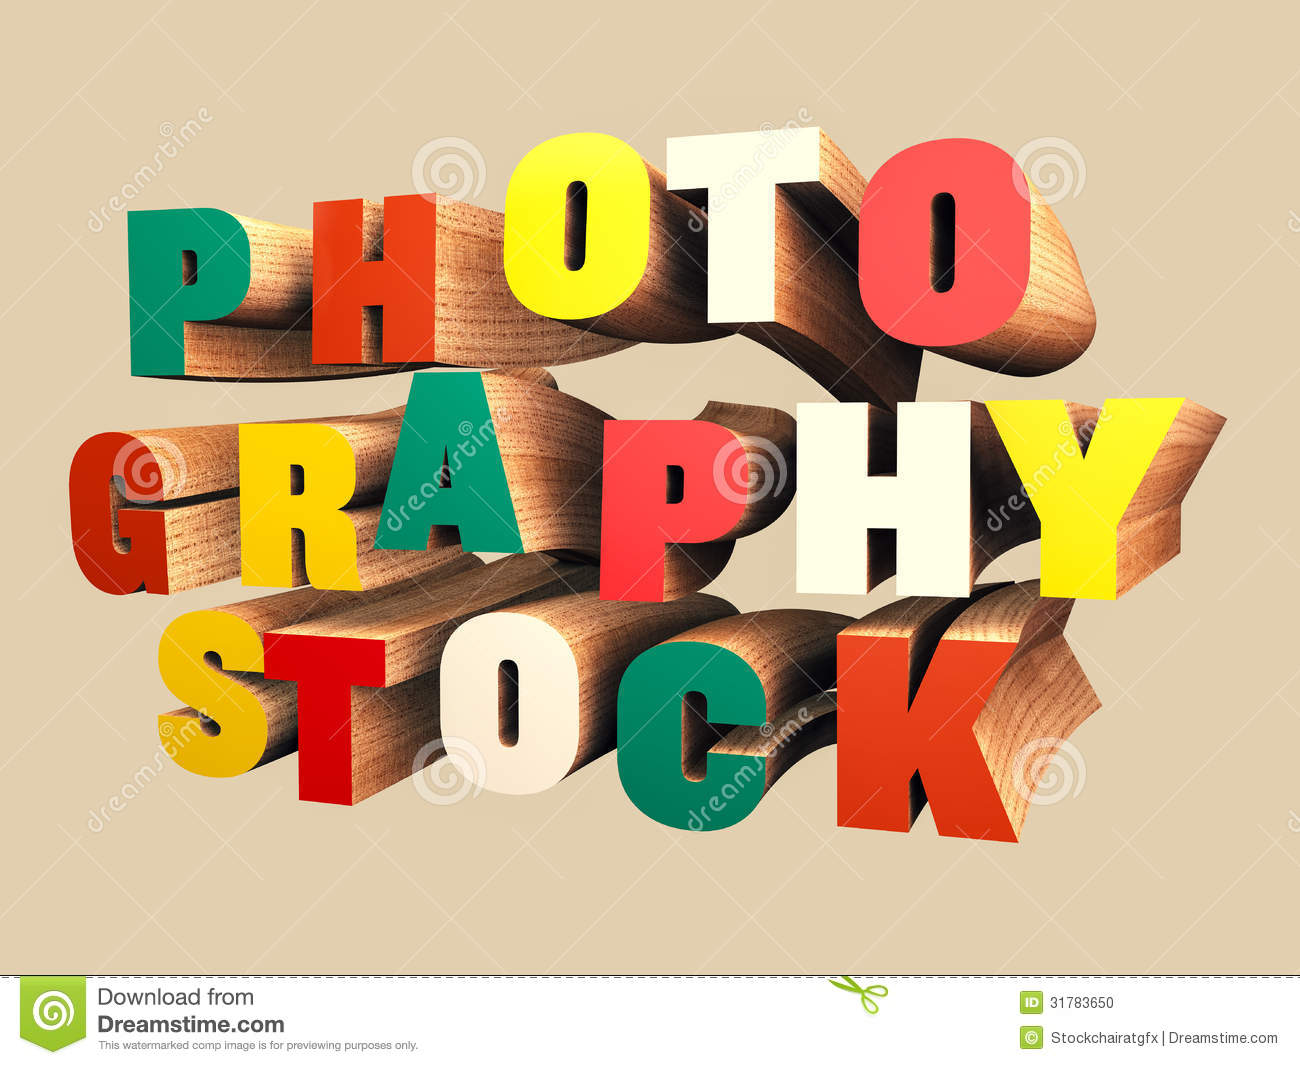 Colorful Wooden 3D Text Stock Photo - Image: 31783650